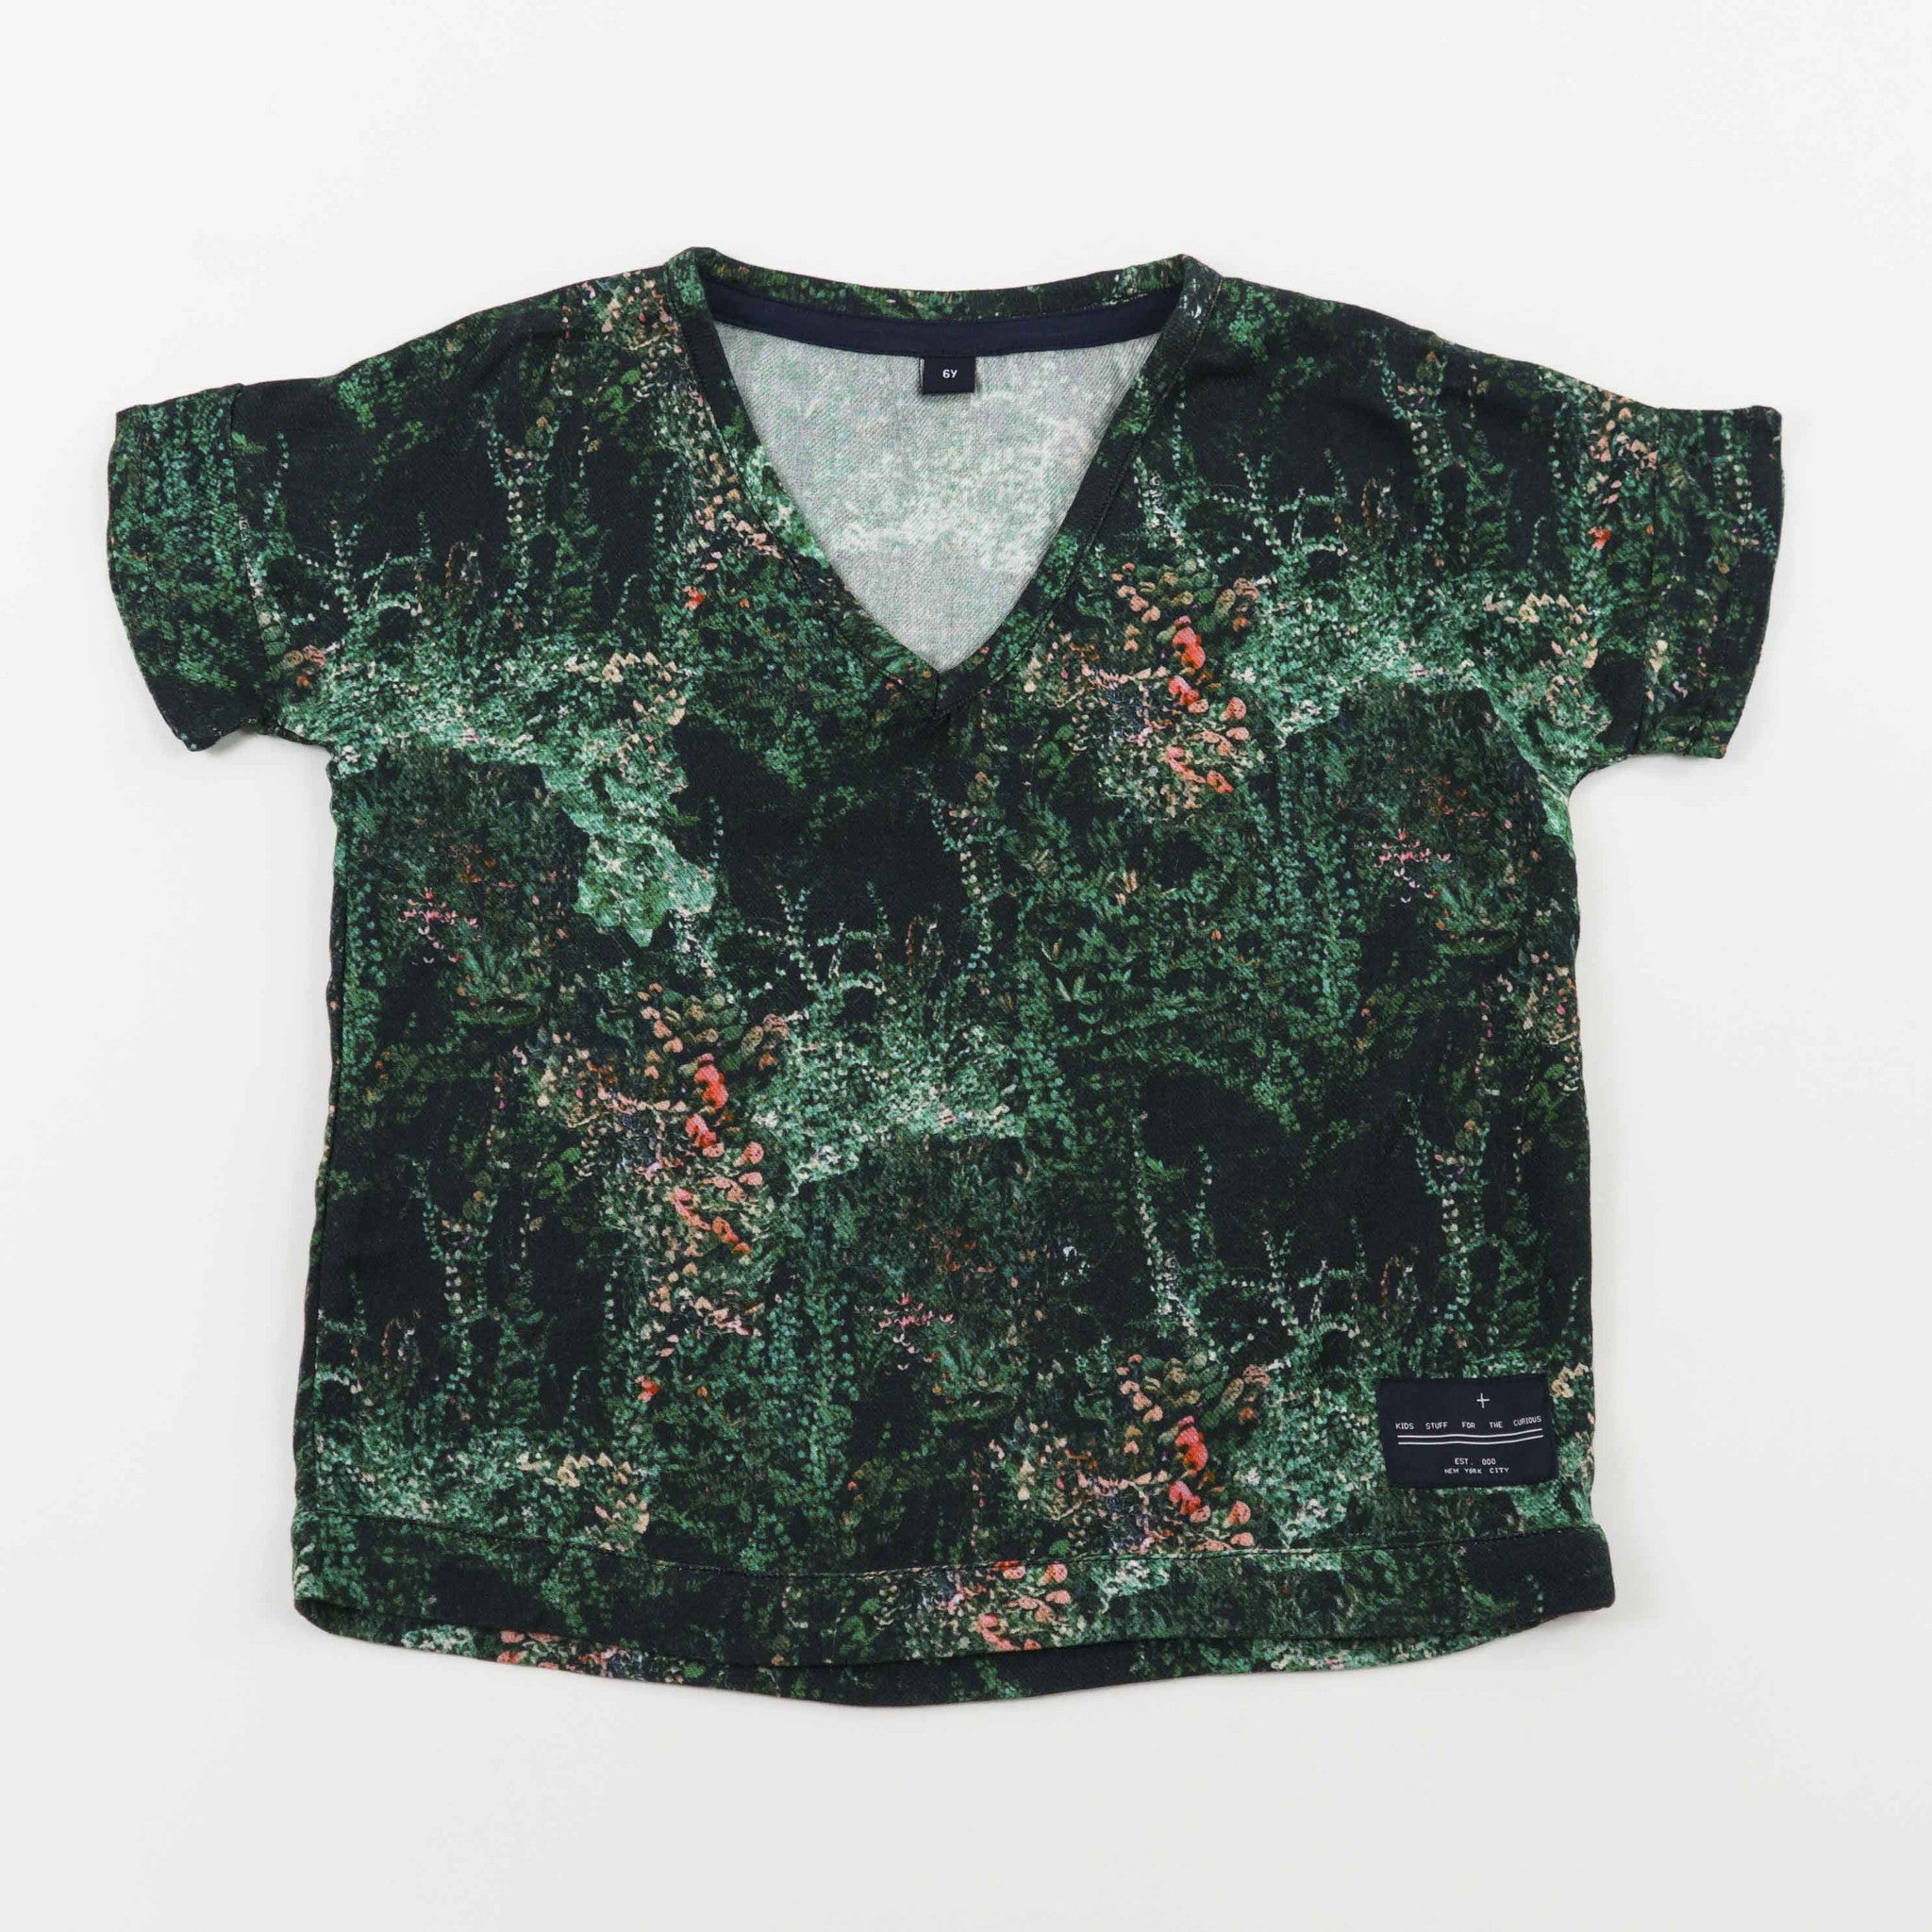 TSHIRT BLOUSE - JANGAL FOREST